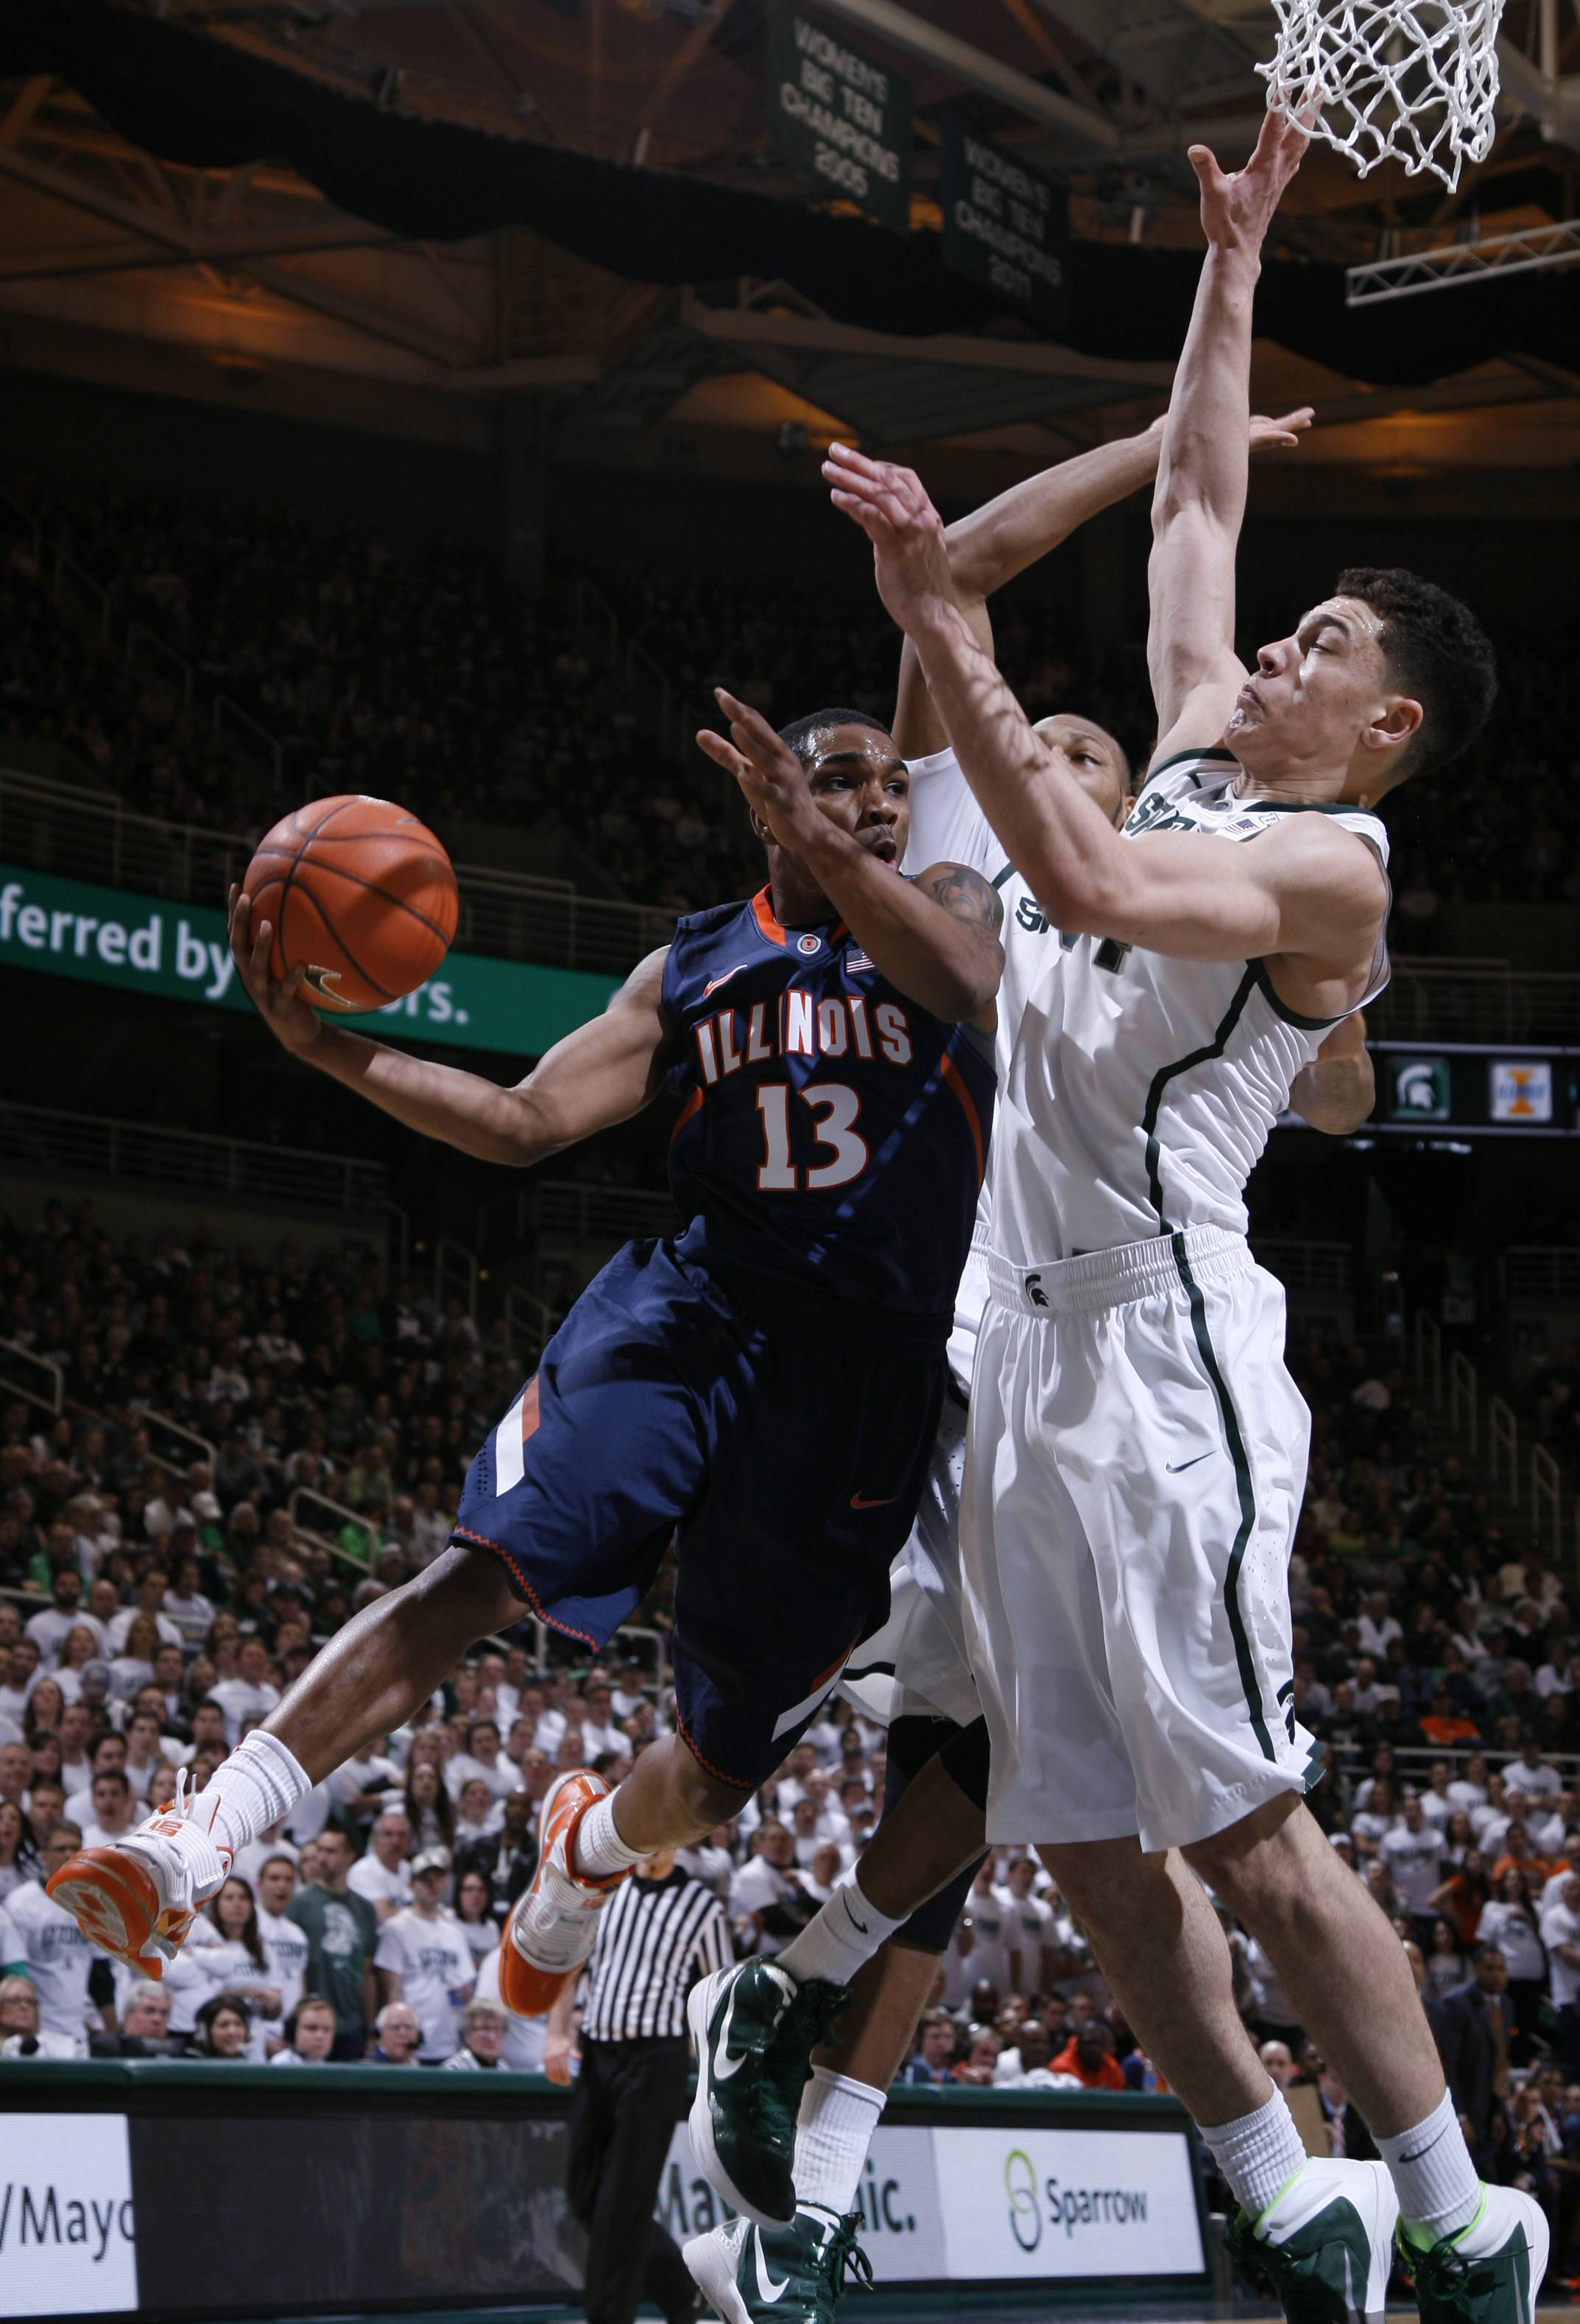 Illinois' Tracy Abrams (13) dishes off against Michigan State's Gavin Schilling, right, and Adreian Payne during Saturday's game in East Lansing. Abrams scored 12 points, leading the Illini to a 53-46 win over Michigan State.